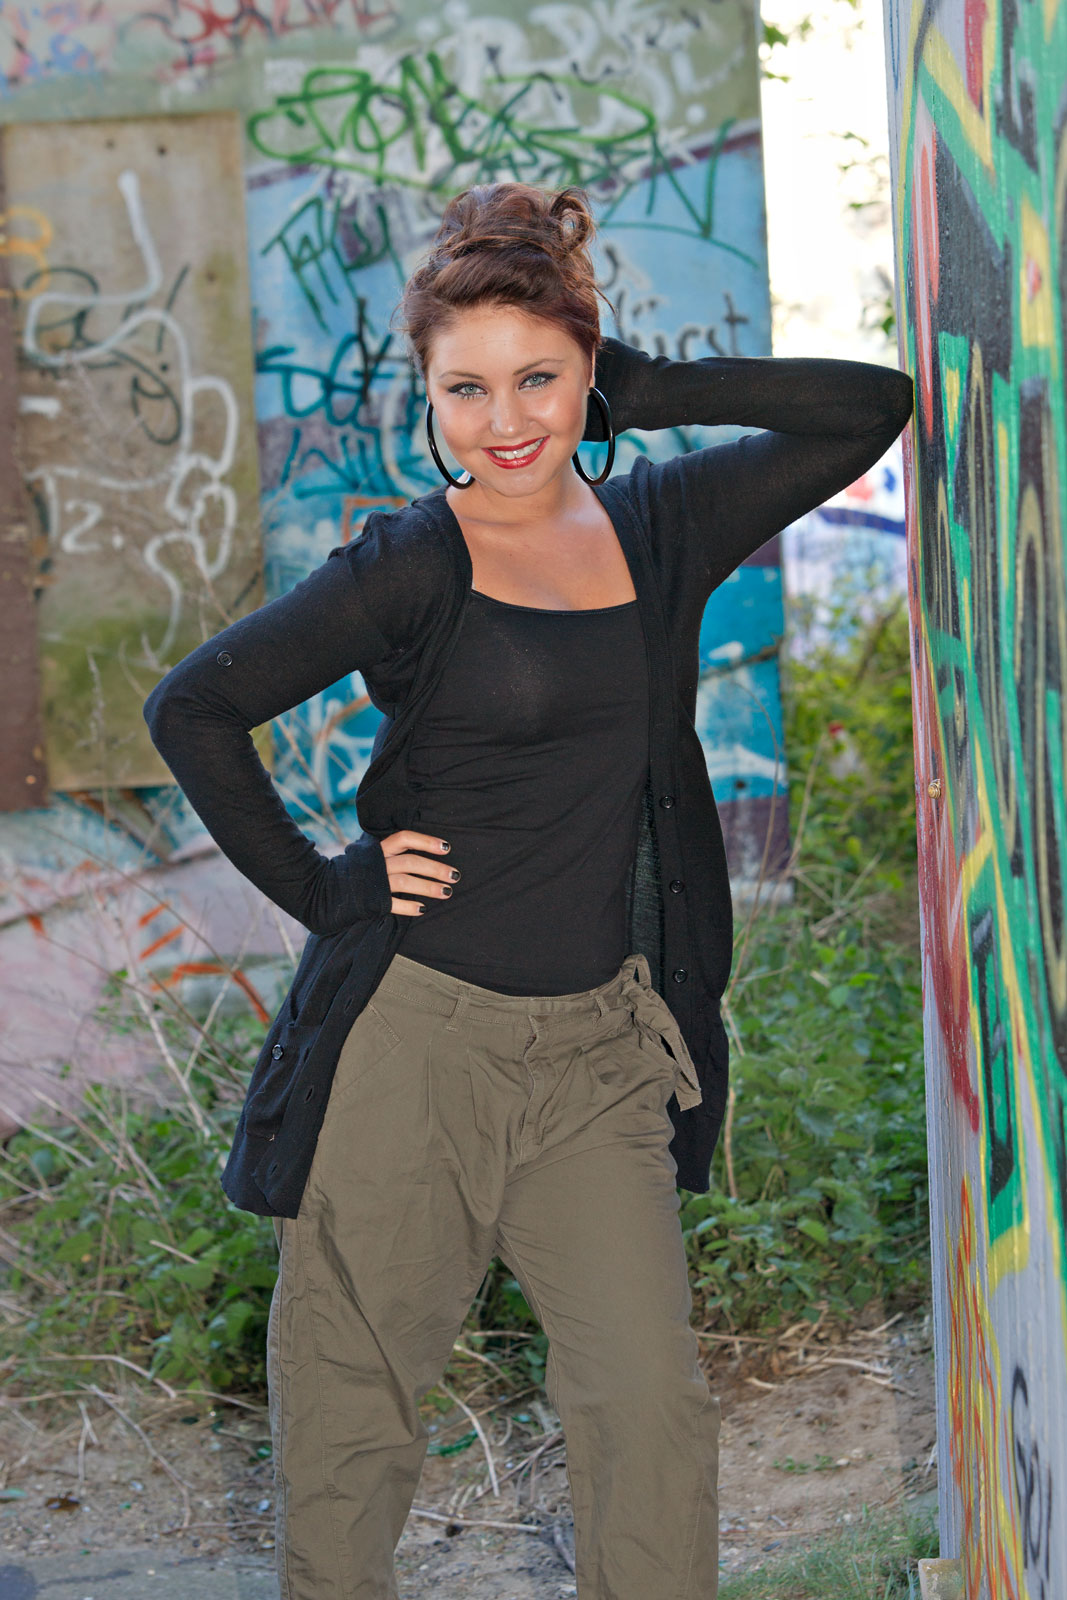 Fotoshooting-on-location-14